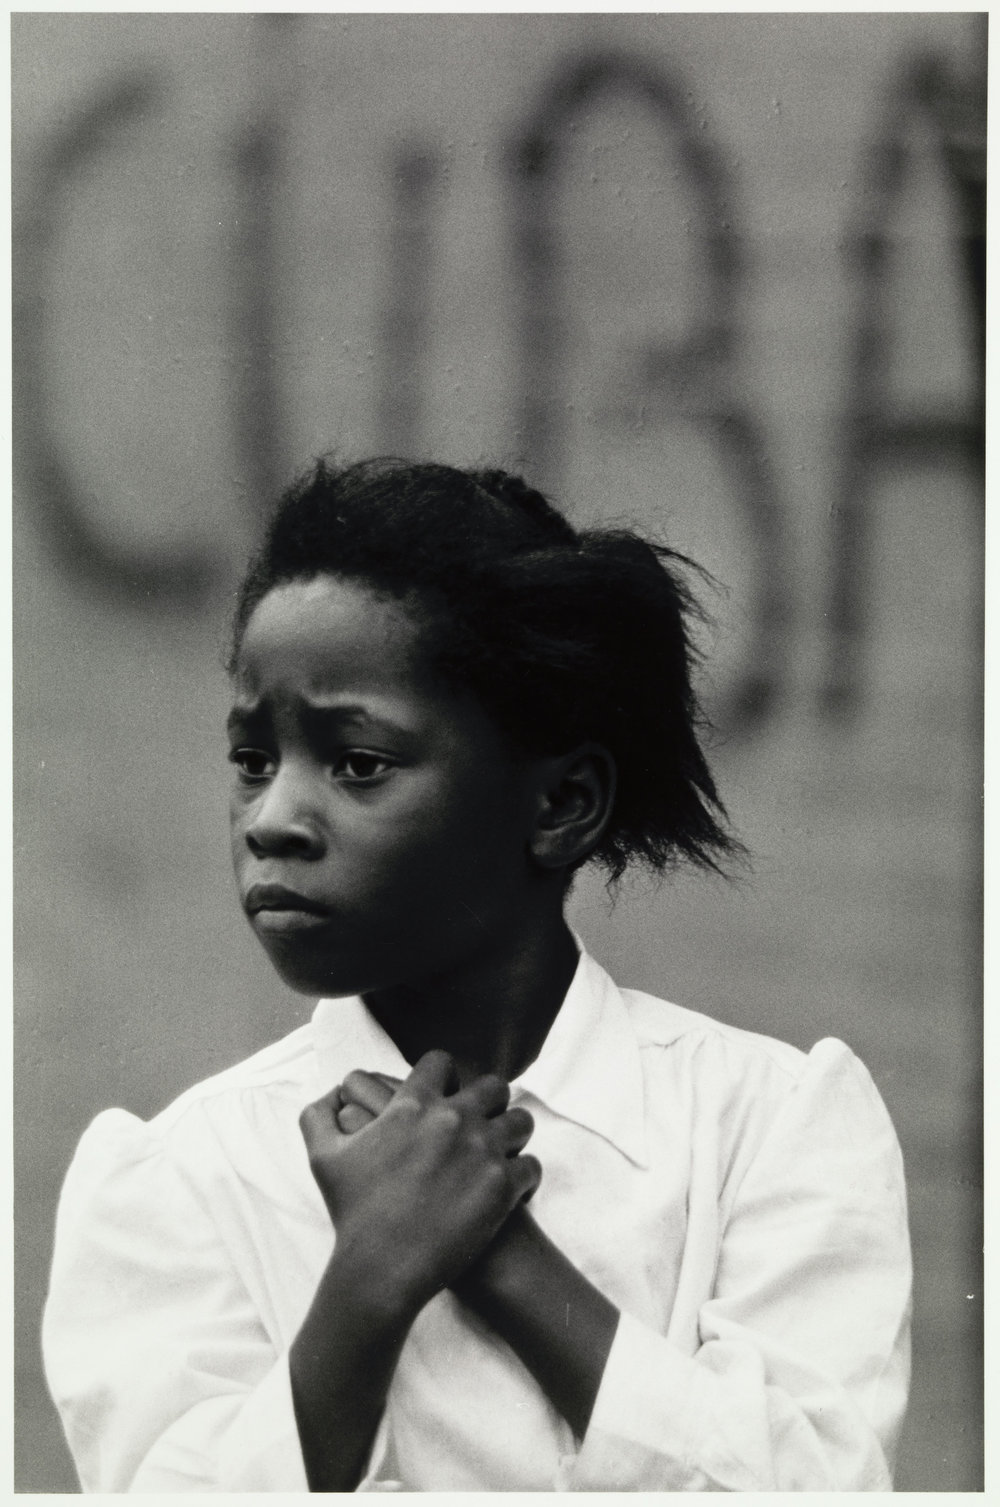 Girl and Cuba,  1968, Louis Draper (American, 1935-2002), gelatin silver print, 9 3/8 x 6 1/8 in. Virginia Museum of Fine Arts; Arthur and Margaret Glasgow Endowment.  Image © Louis H. Draper Preservation Trust